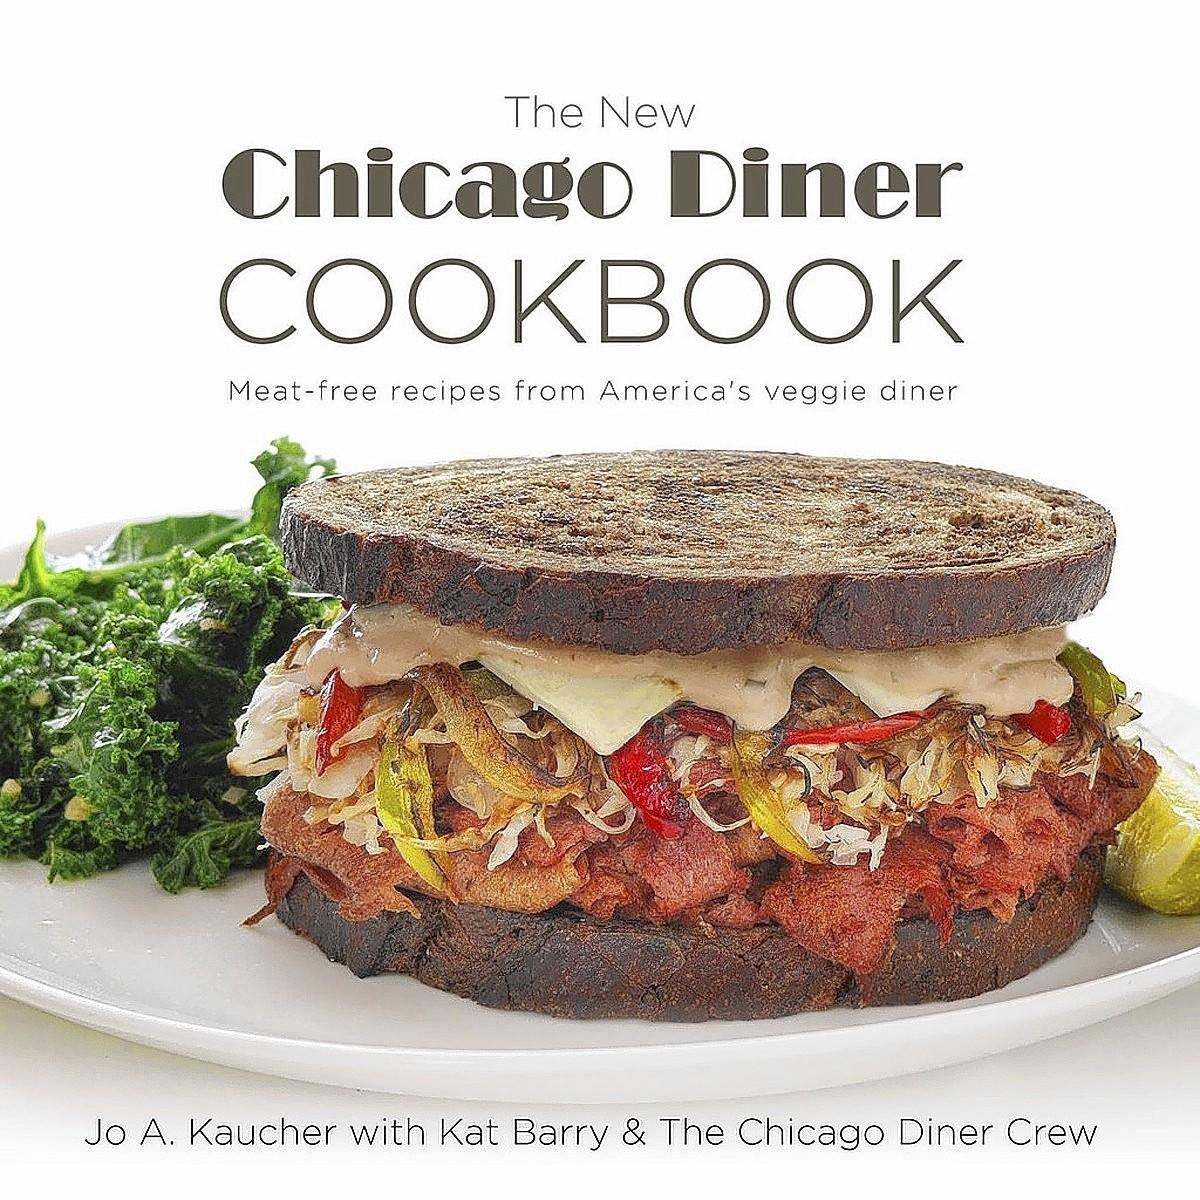 The New Chicago Diner Cookbook includes vegan and vegetarian restaurant favorites and recipes for meat substitutes.